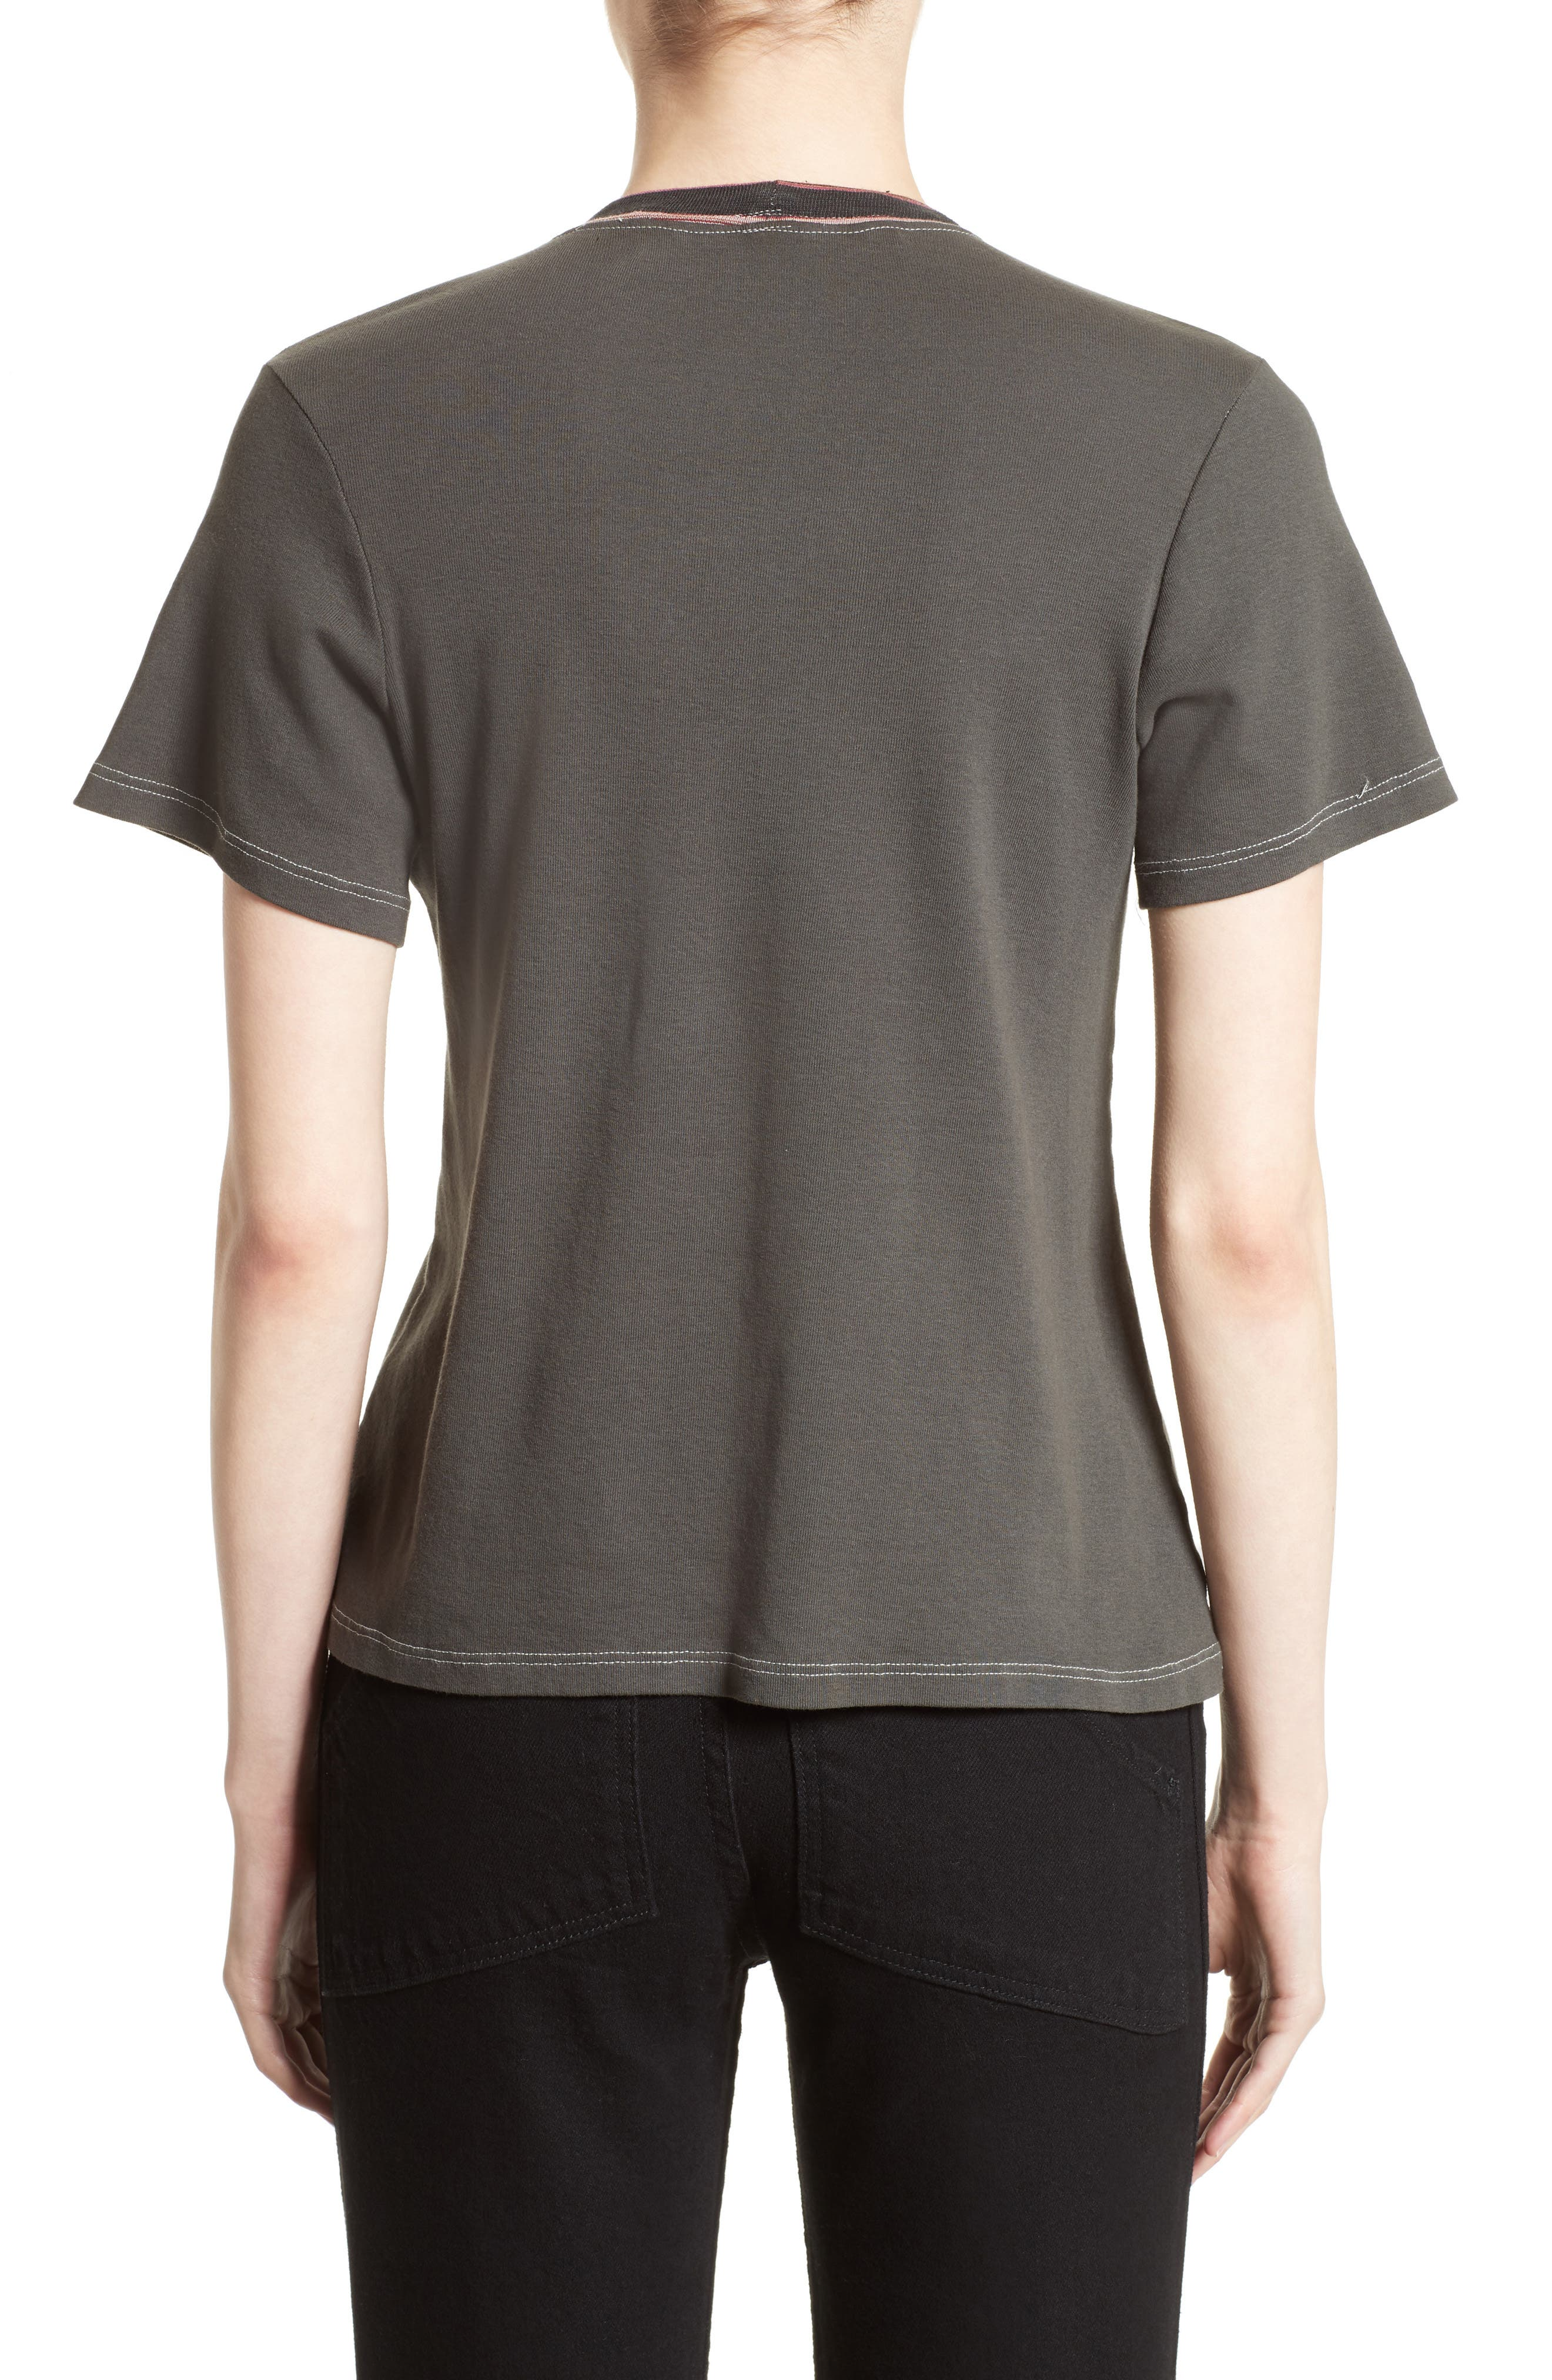 Top Stitch Tee,                             Alternate thumbnail 2, color,                             020